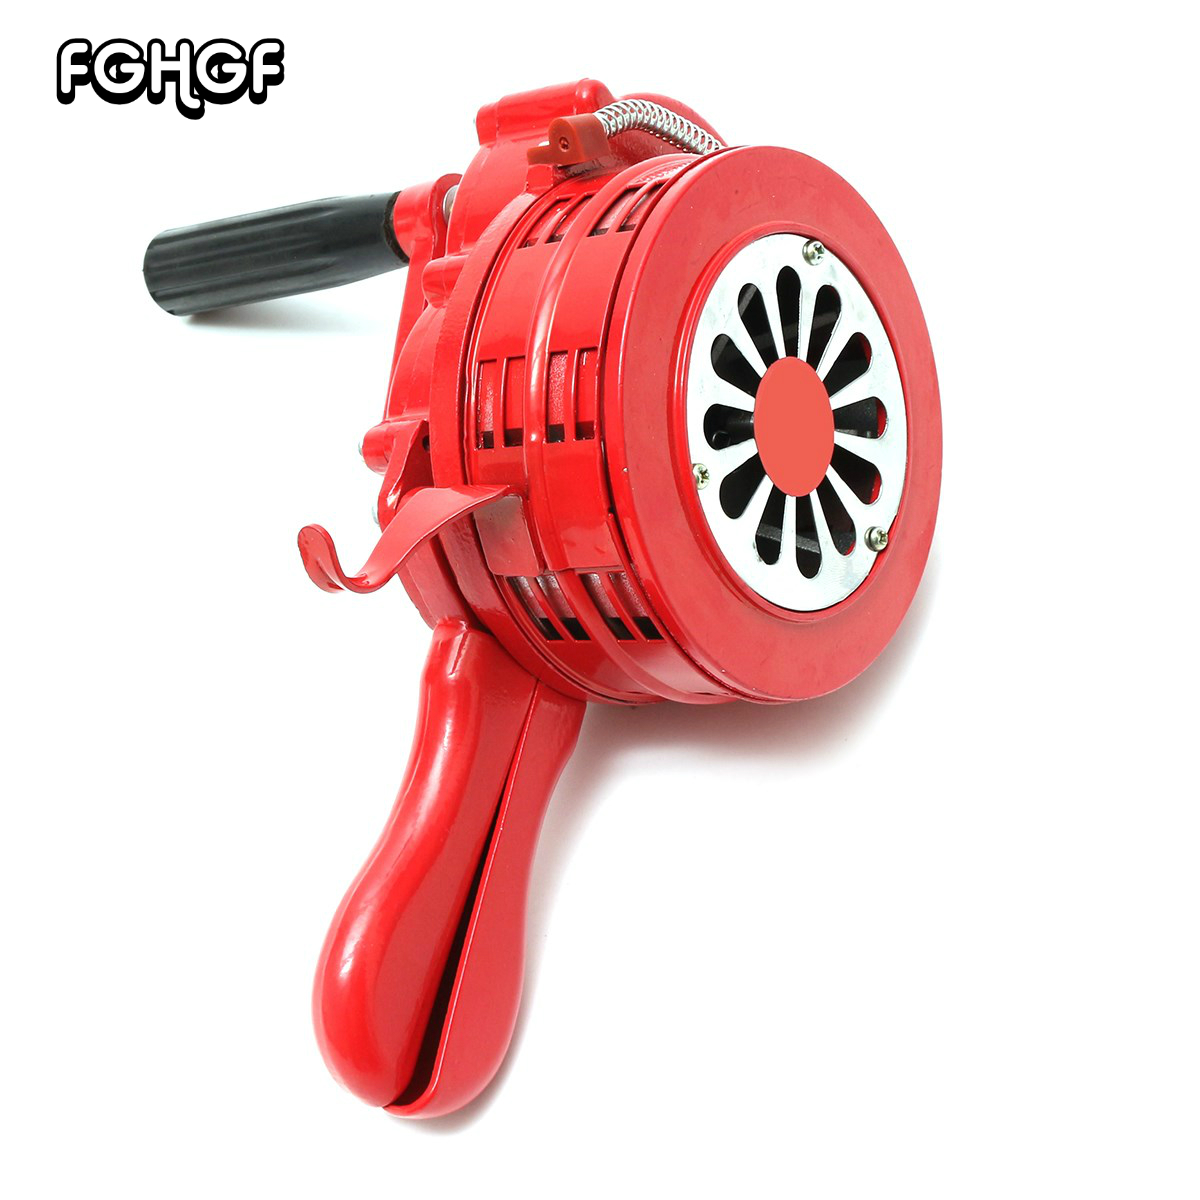 Hot Sale 4.5 Red Aluminium Alloy Handheld Manual Operated Security Alarm Air Raid Siren Portable Safety Alarm Siren Red ac110v 160db motor driven air raid siren metal horn industry boat alarm